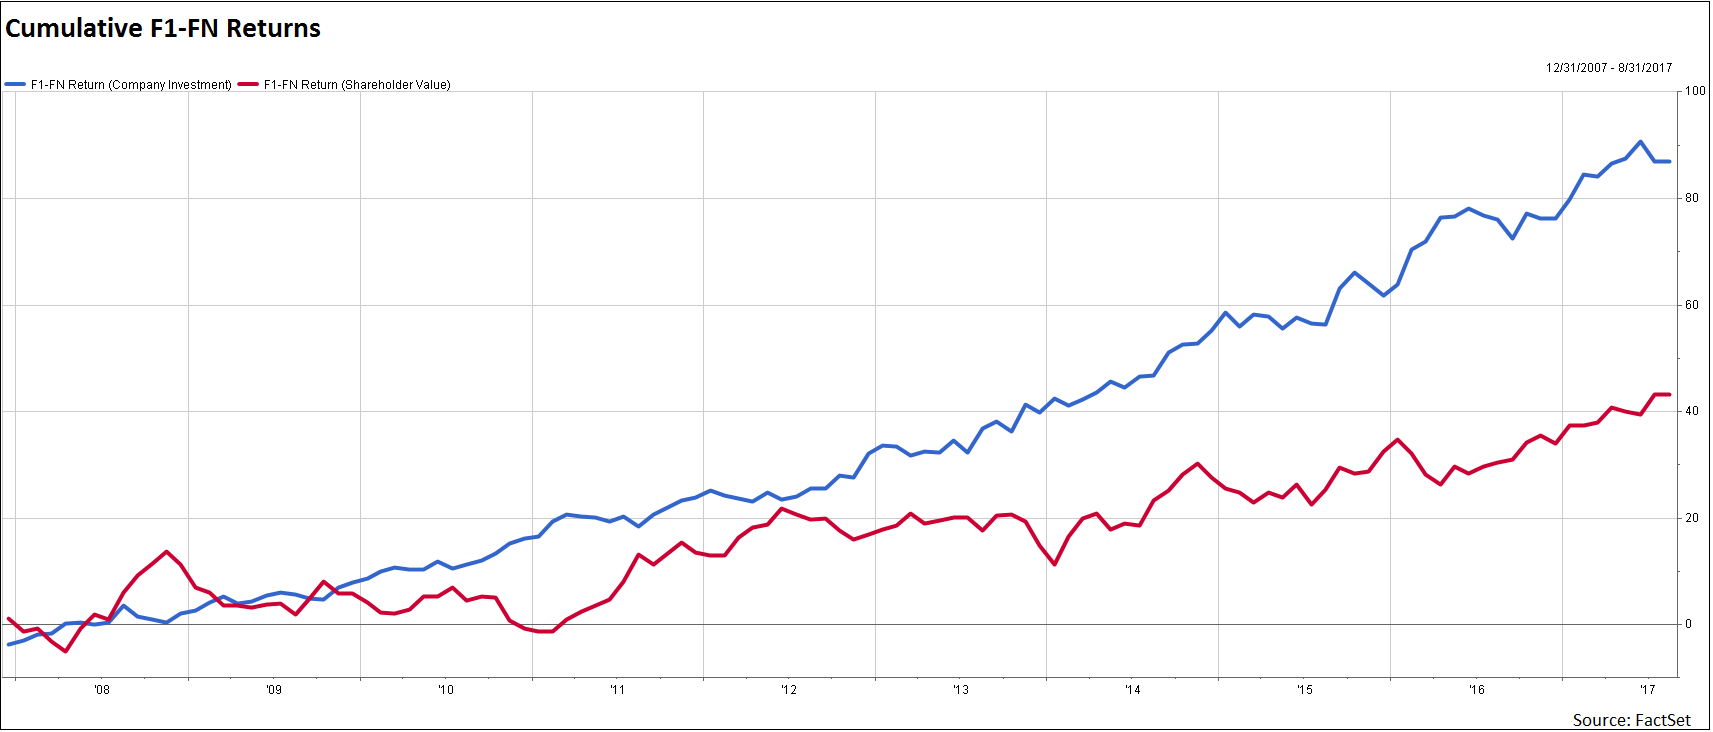 5The figure also shows that shareholder value's cumulative active return is 49 of the company investment factor's return.png